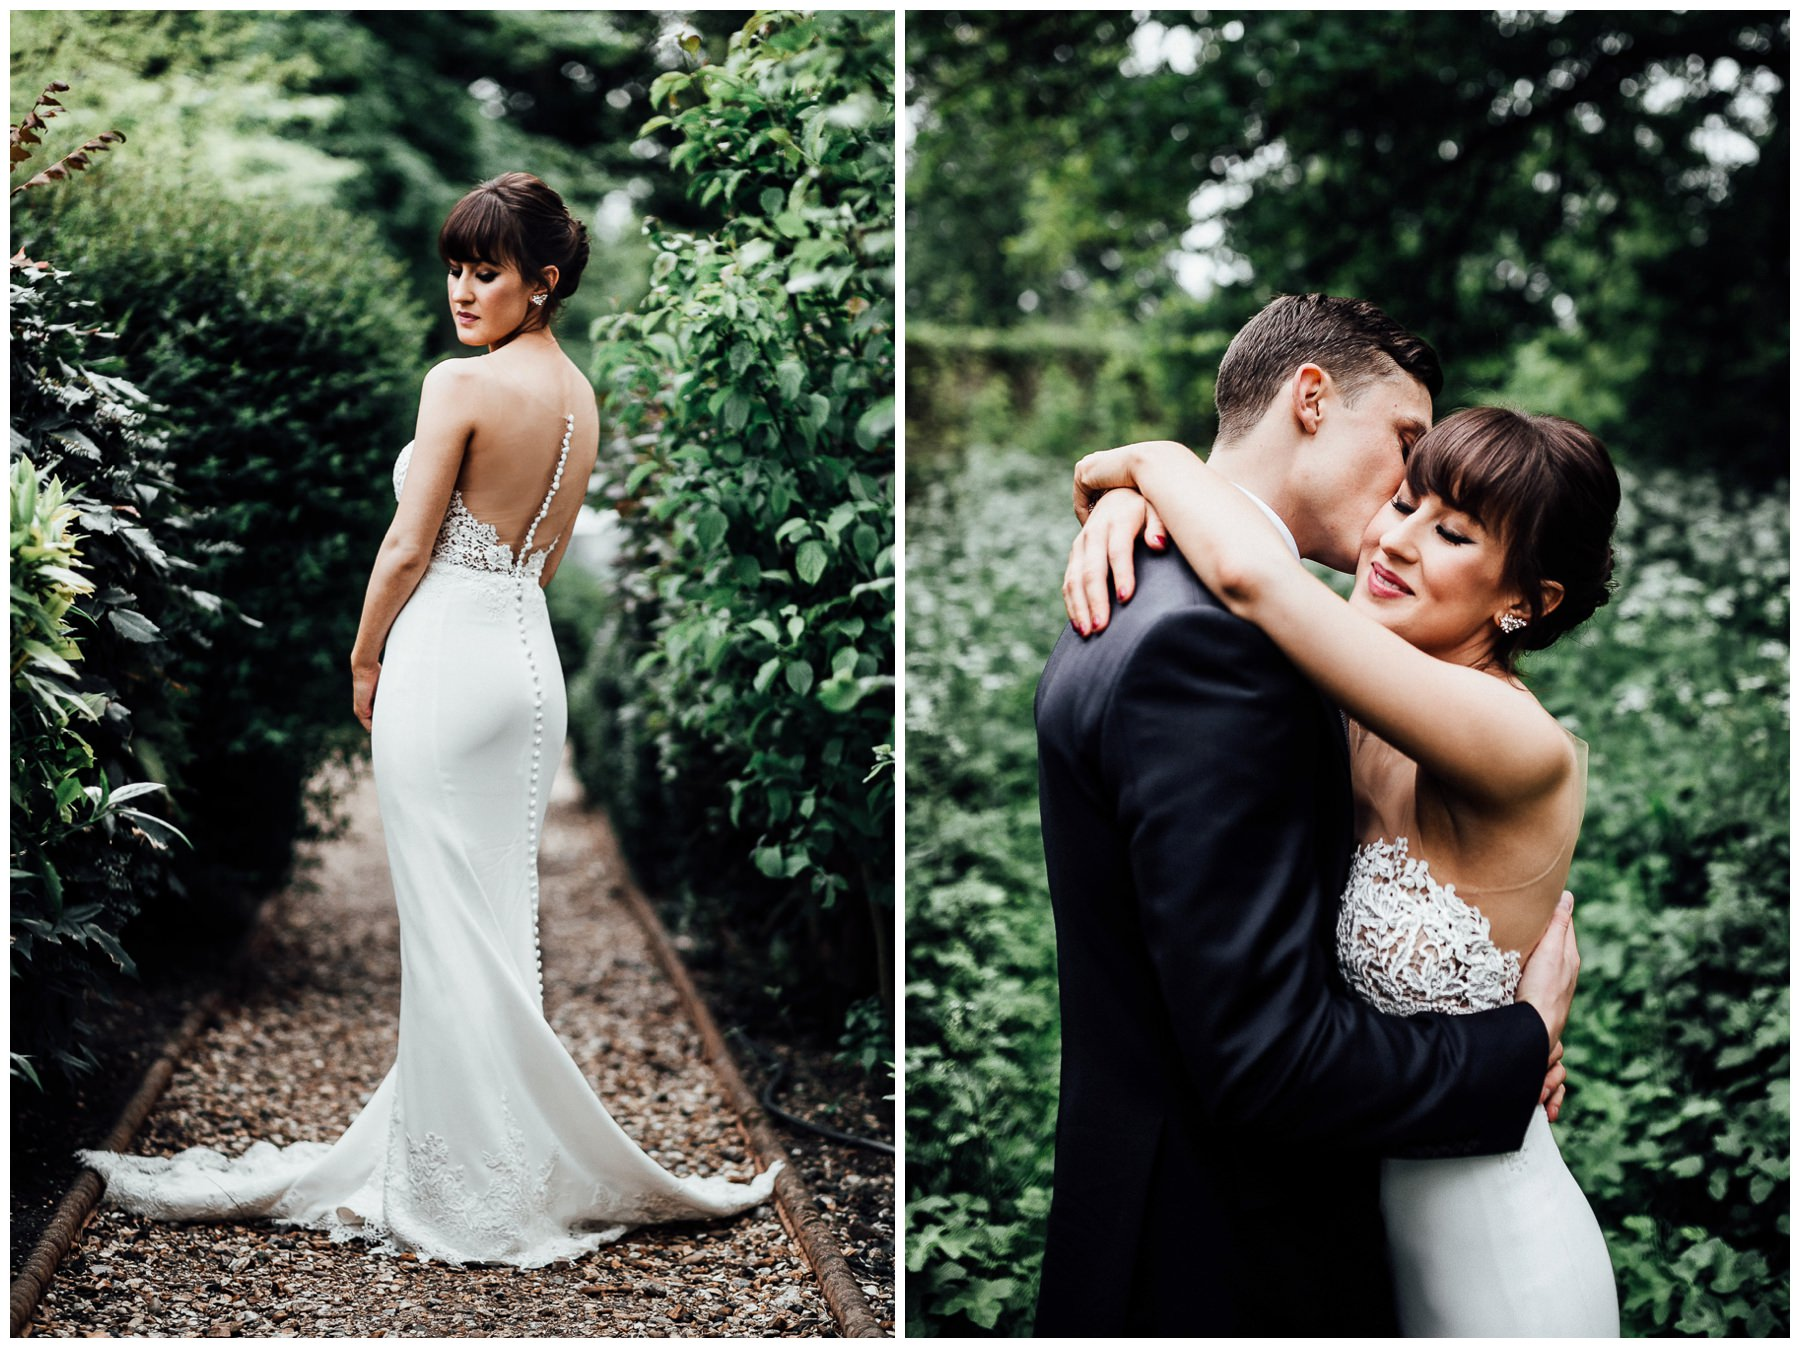 martina liana gown at woodland wedding in london